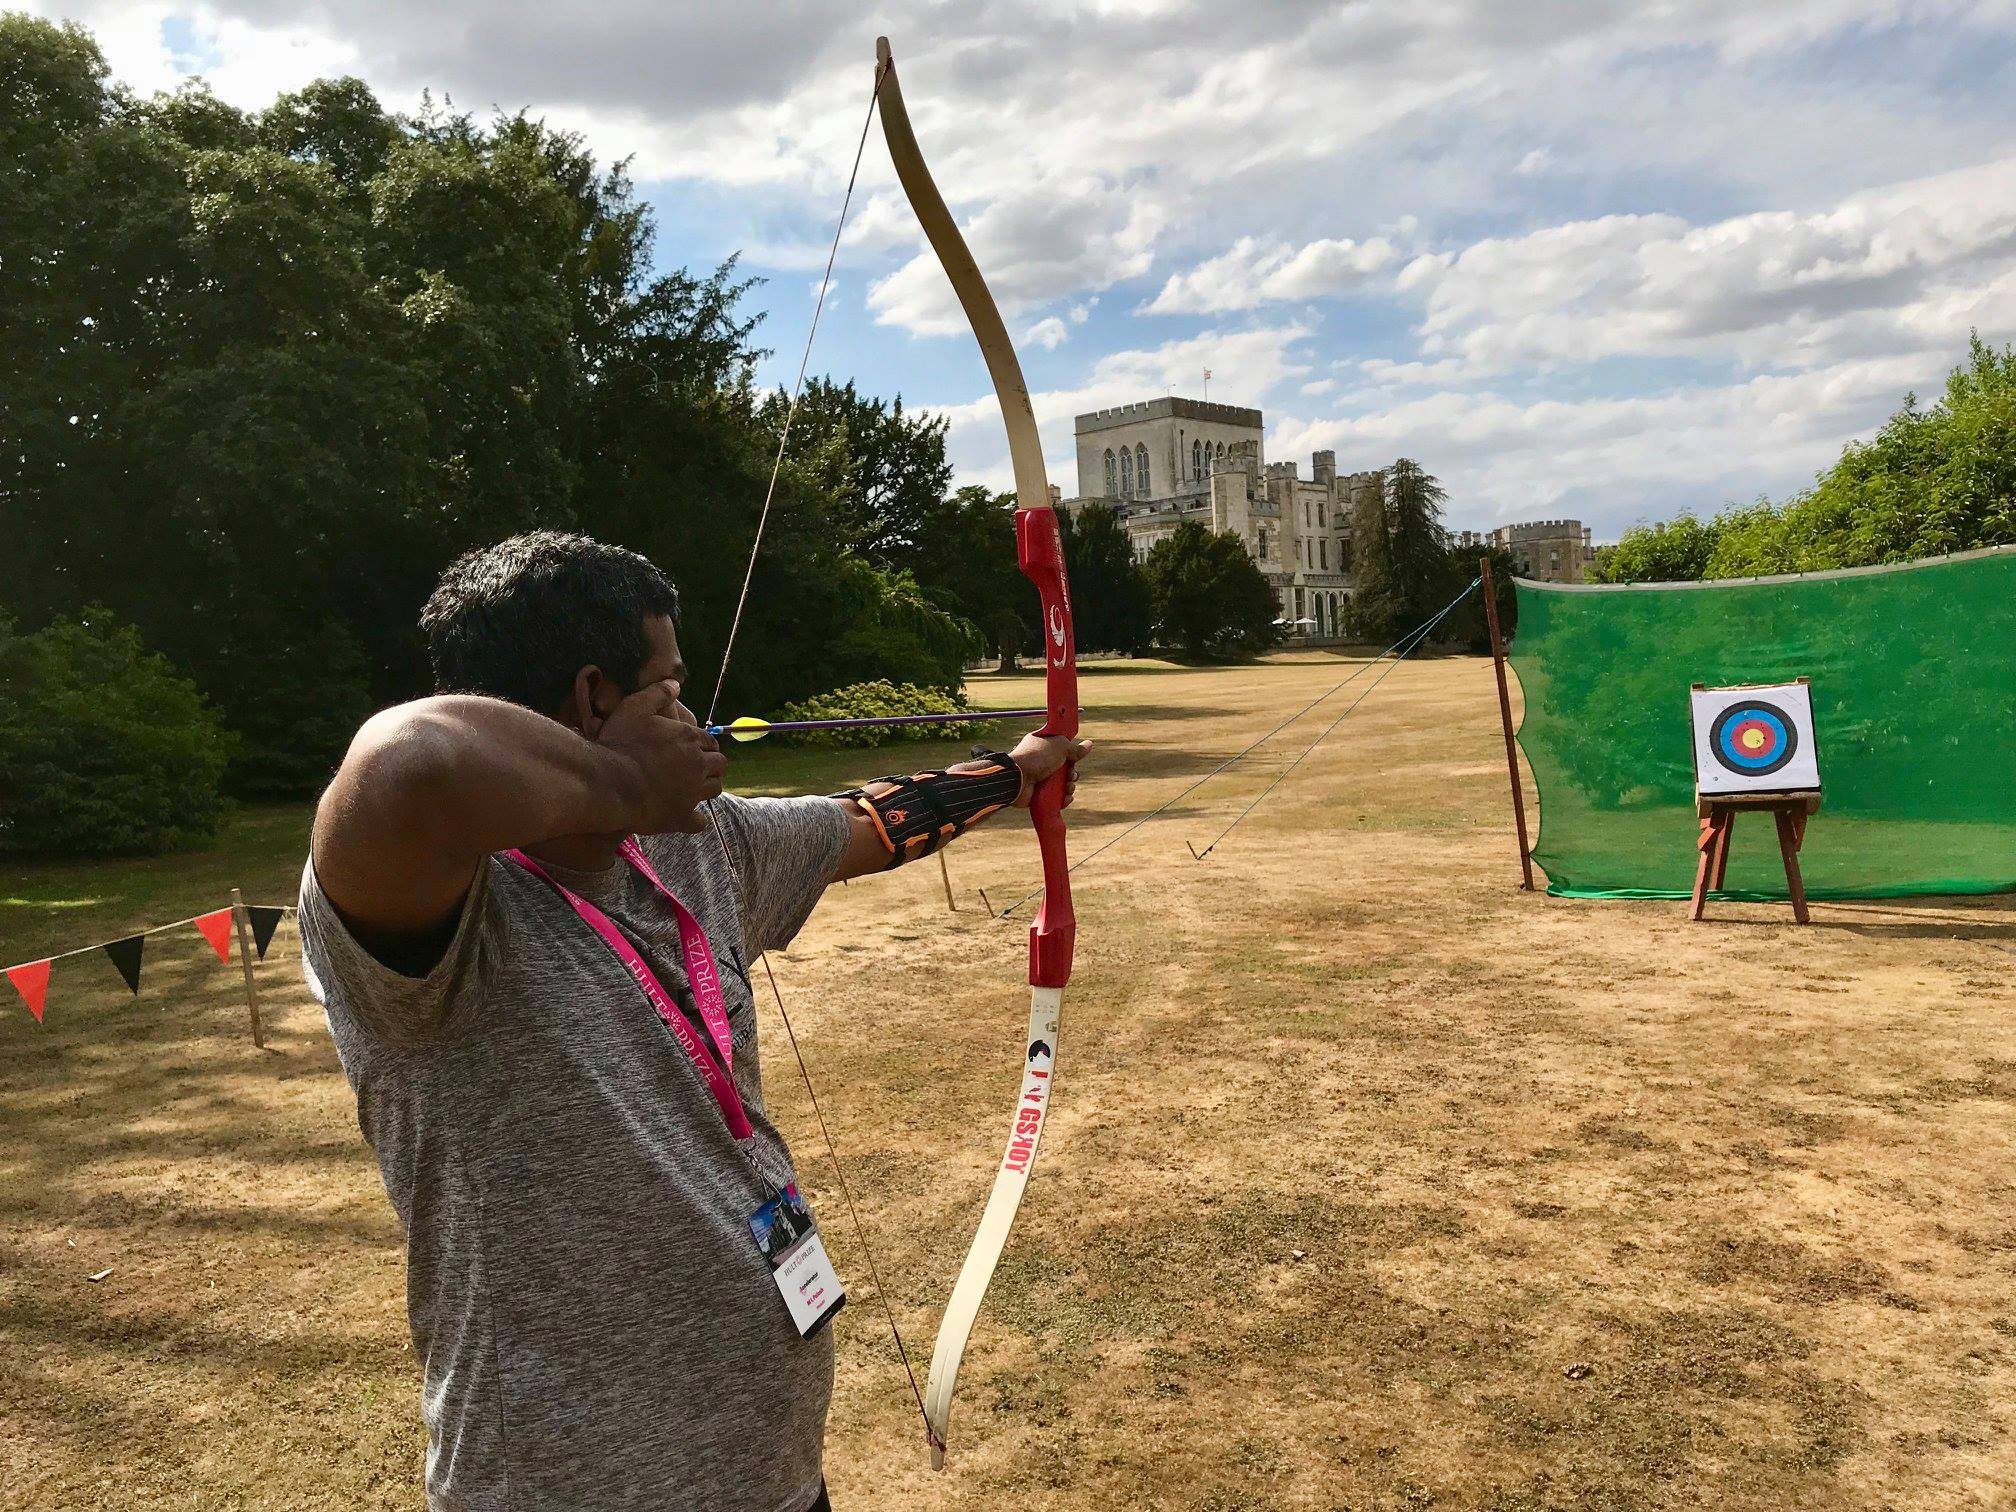 Aiming for future at Hult castle, UK 201